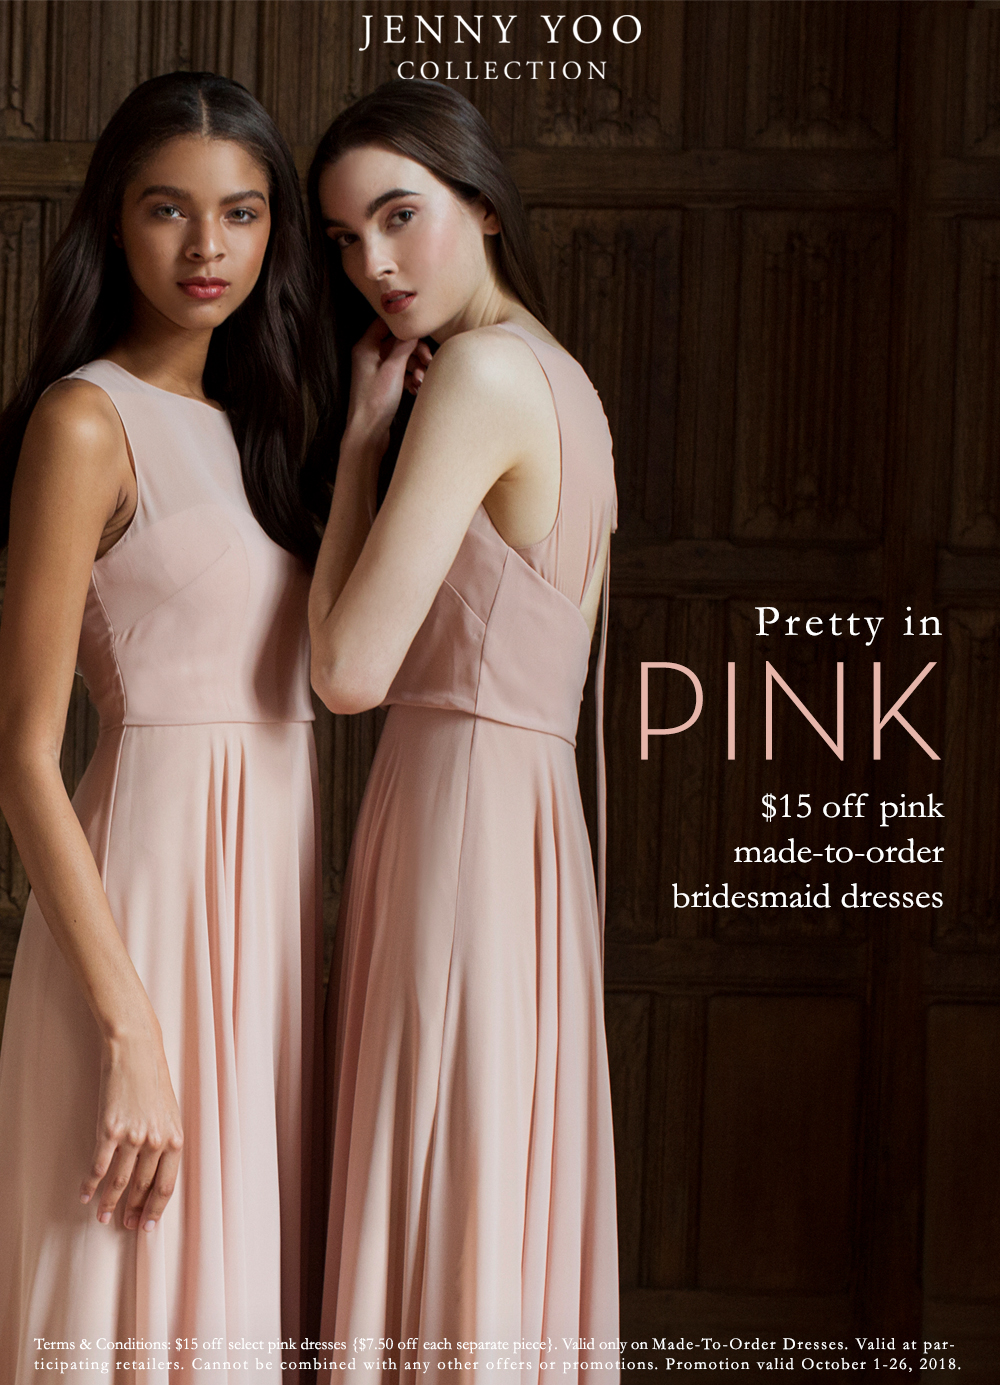 Jenny You Pink Blush Bridemaids Dresses Tampa Boutique